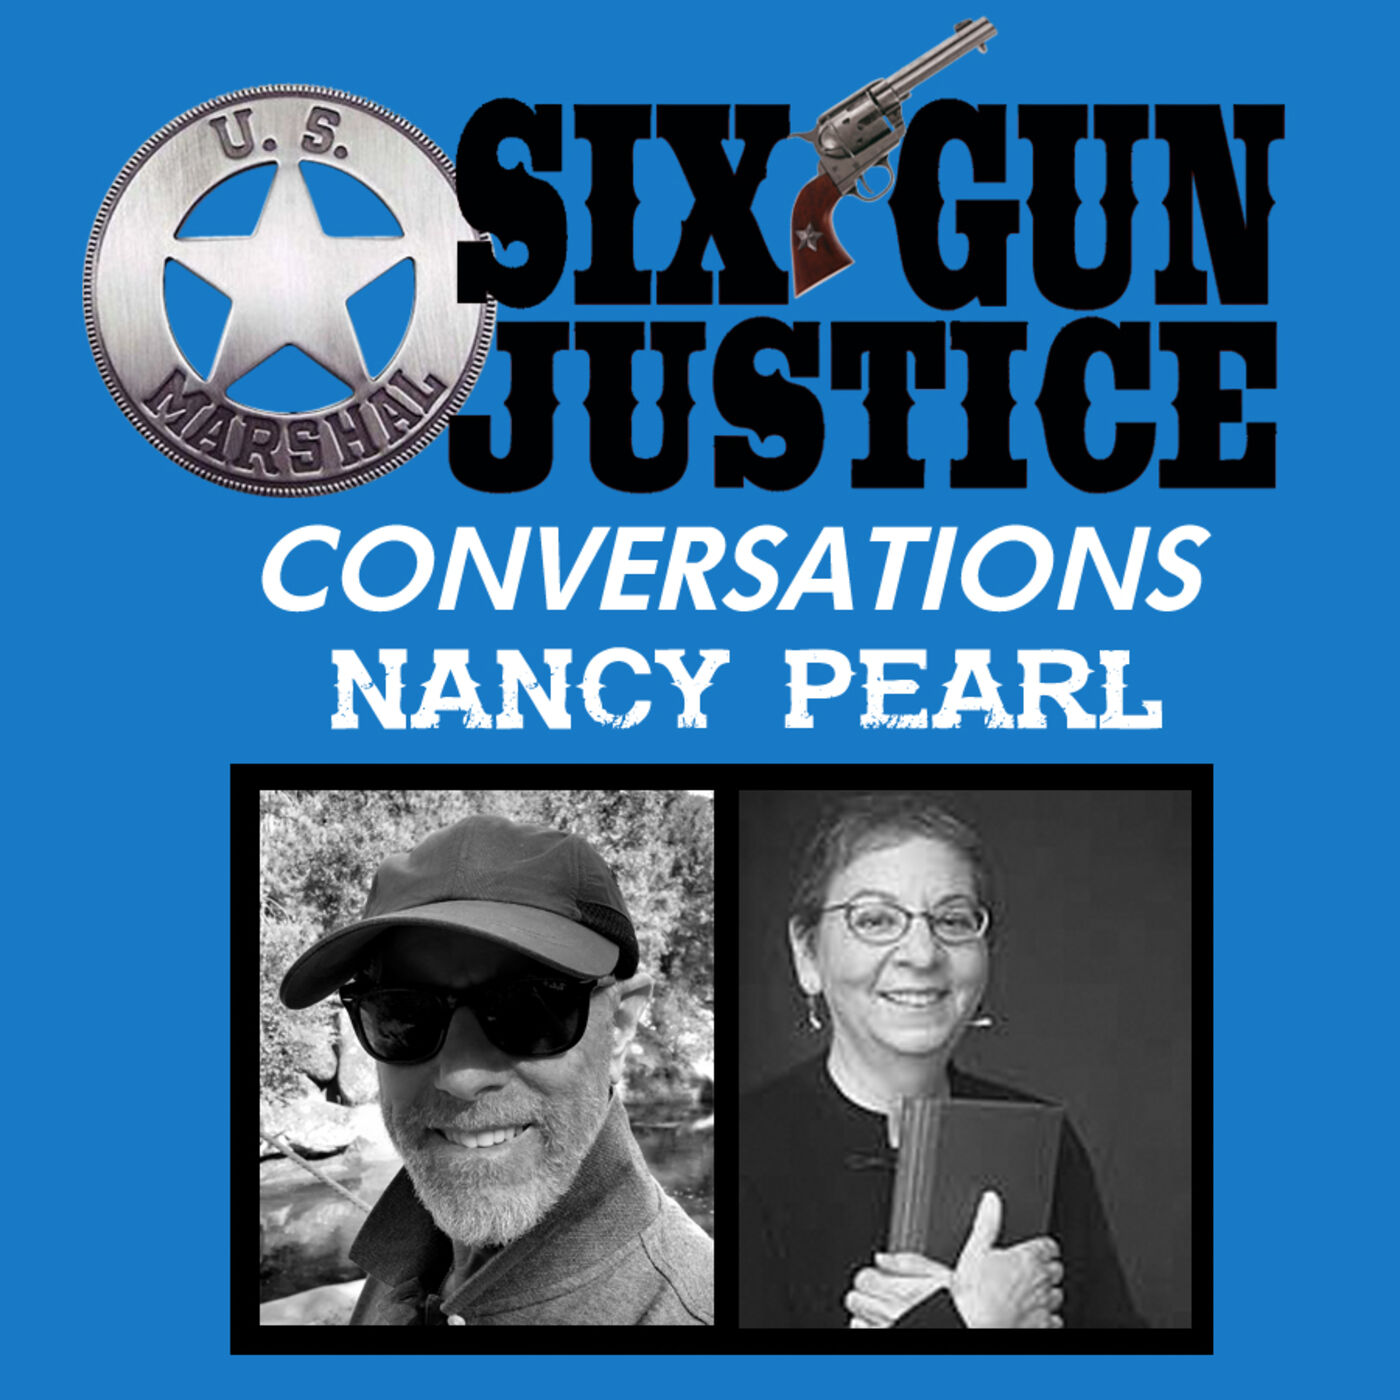 SIX-GUN CONVERSATIONS—NANCY PEARL